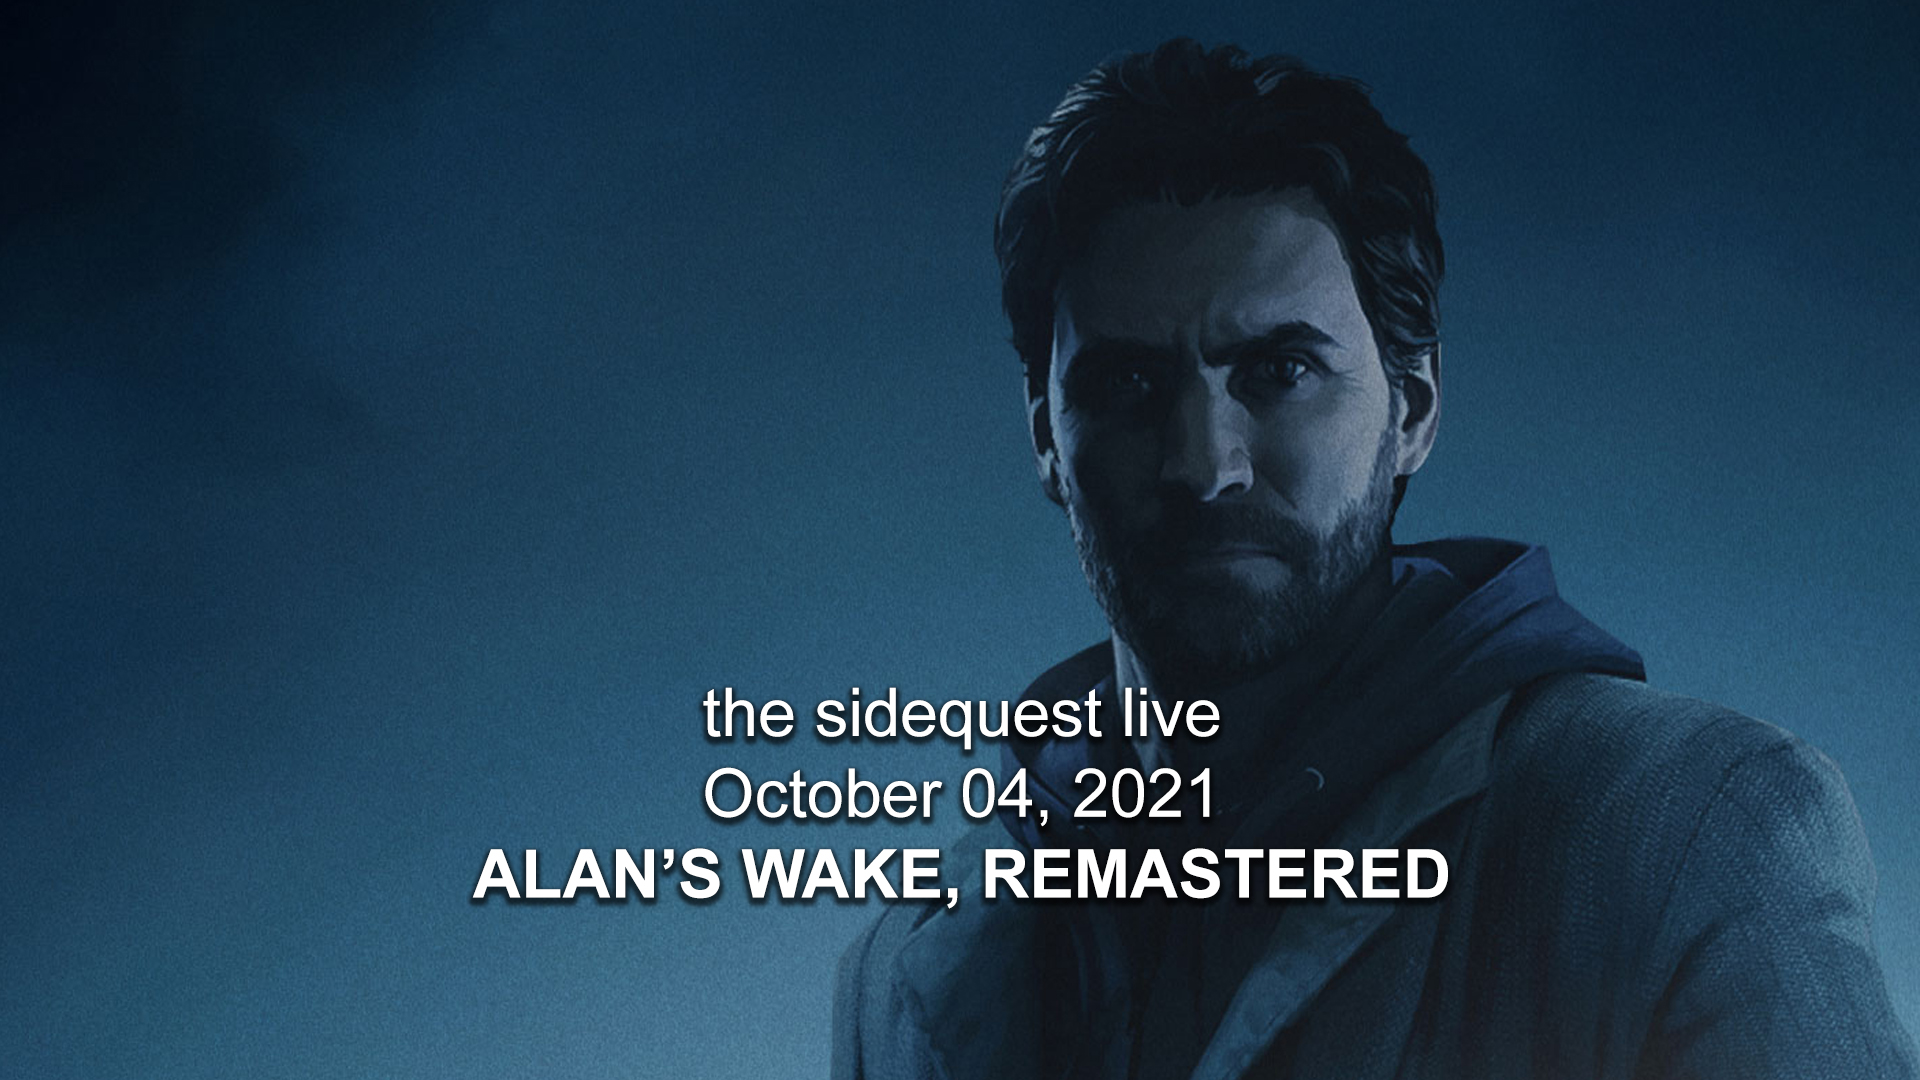 The SideQuest LIVE! October 04, 2021: Alan's Wake, Remastered